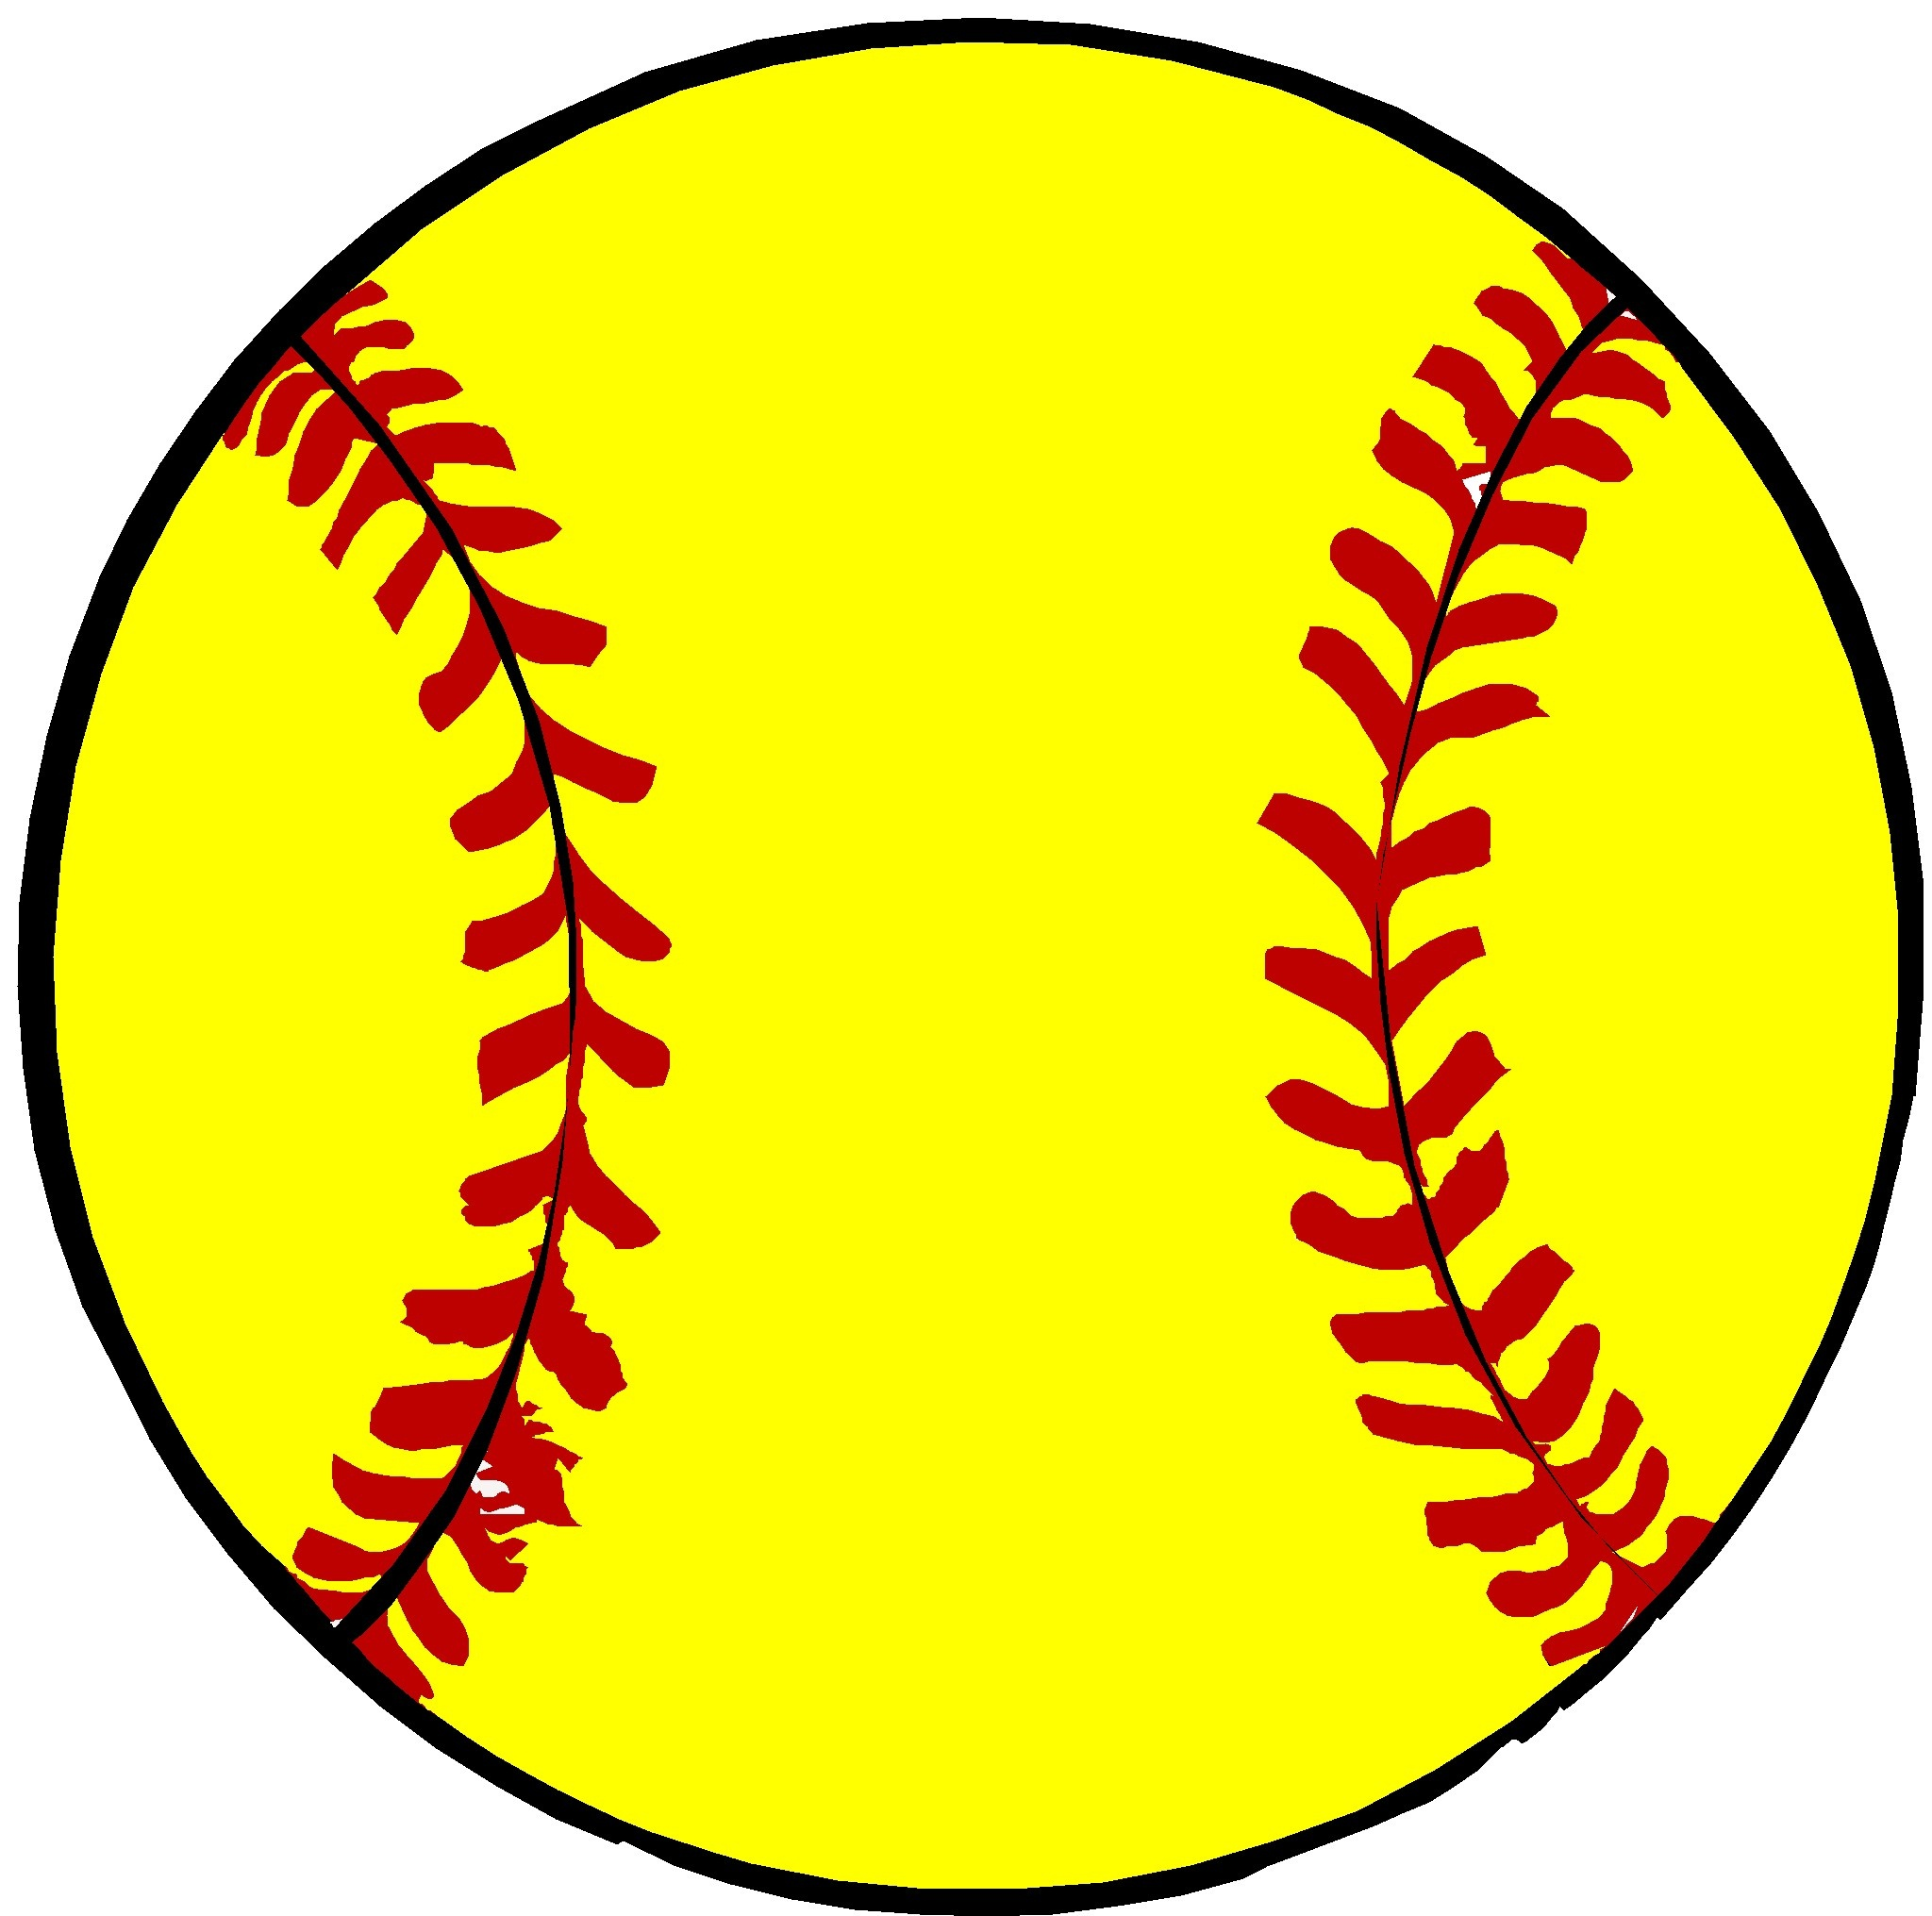 Free Softball Clipart | Free Download Best Free Softball Clipart On - Free Printable Softball Pictures